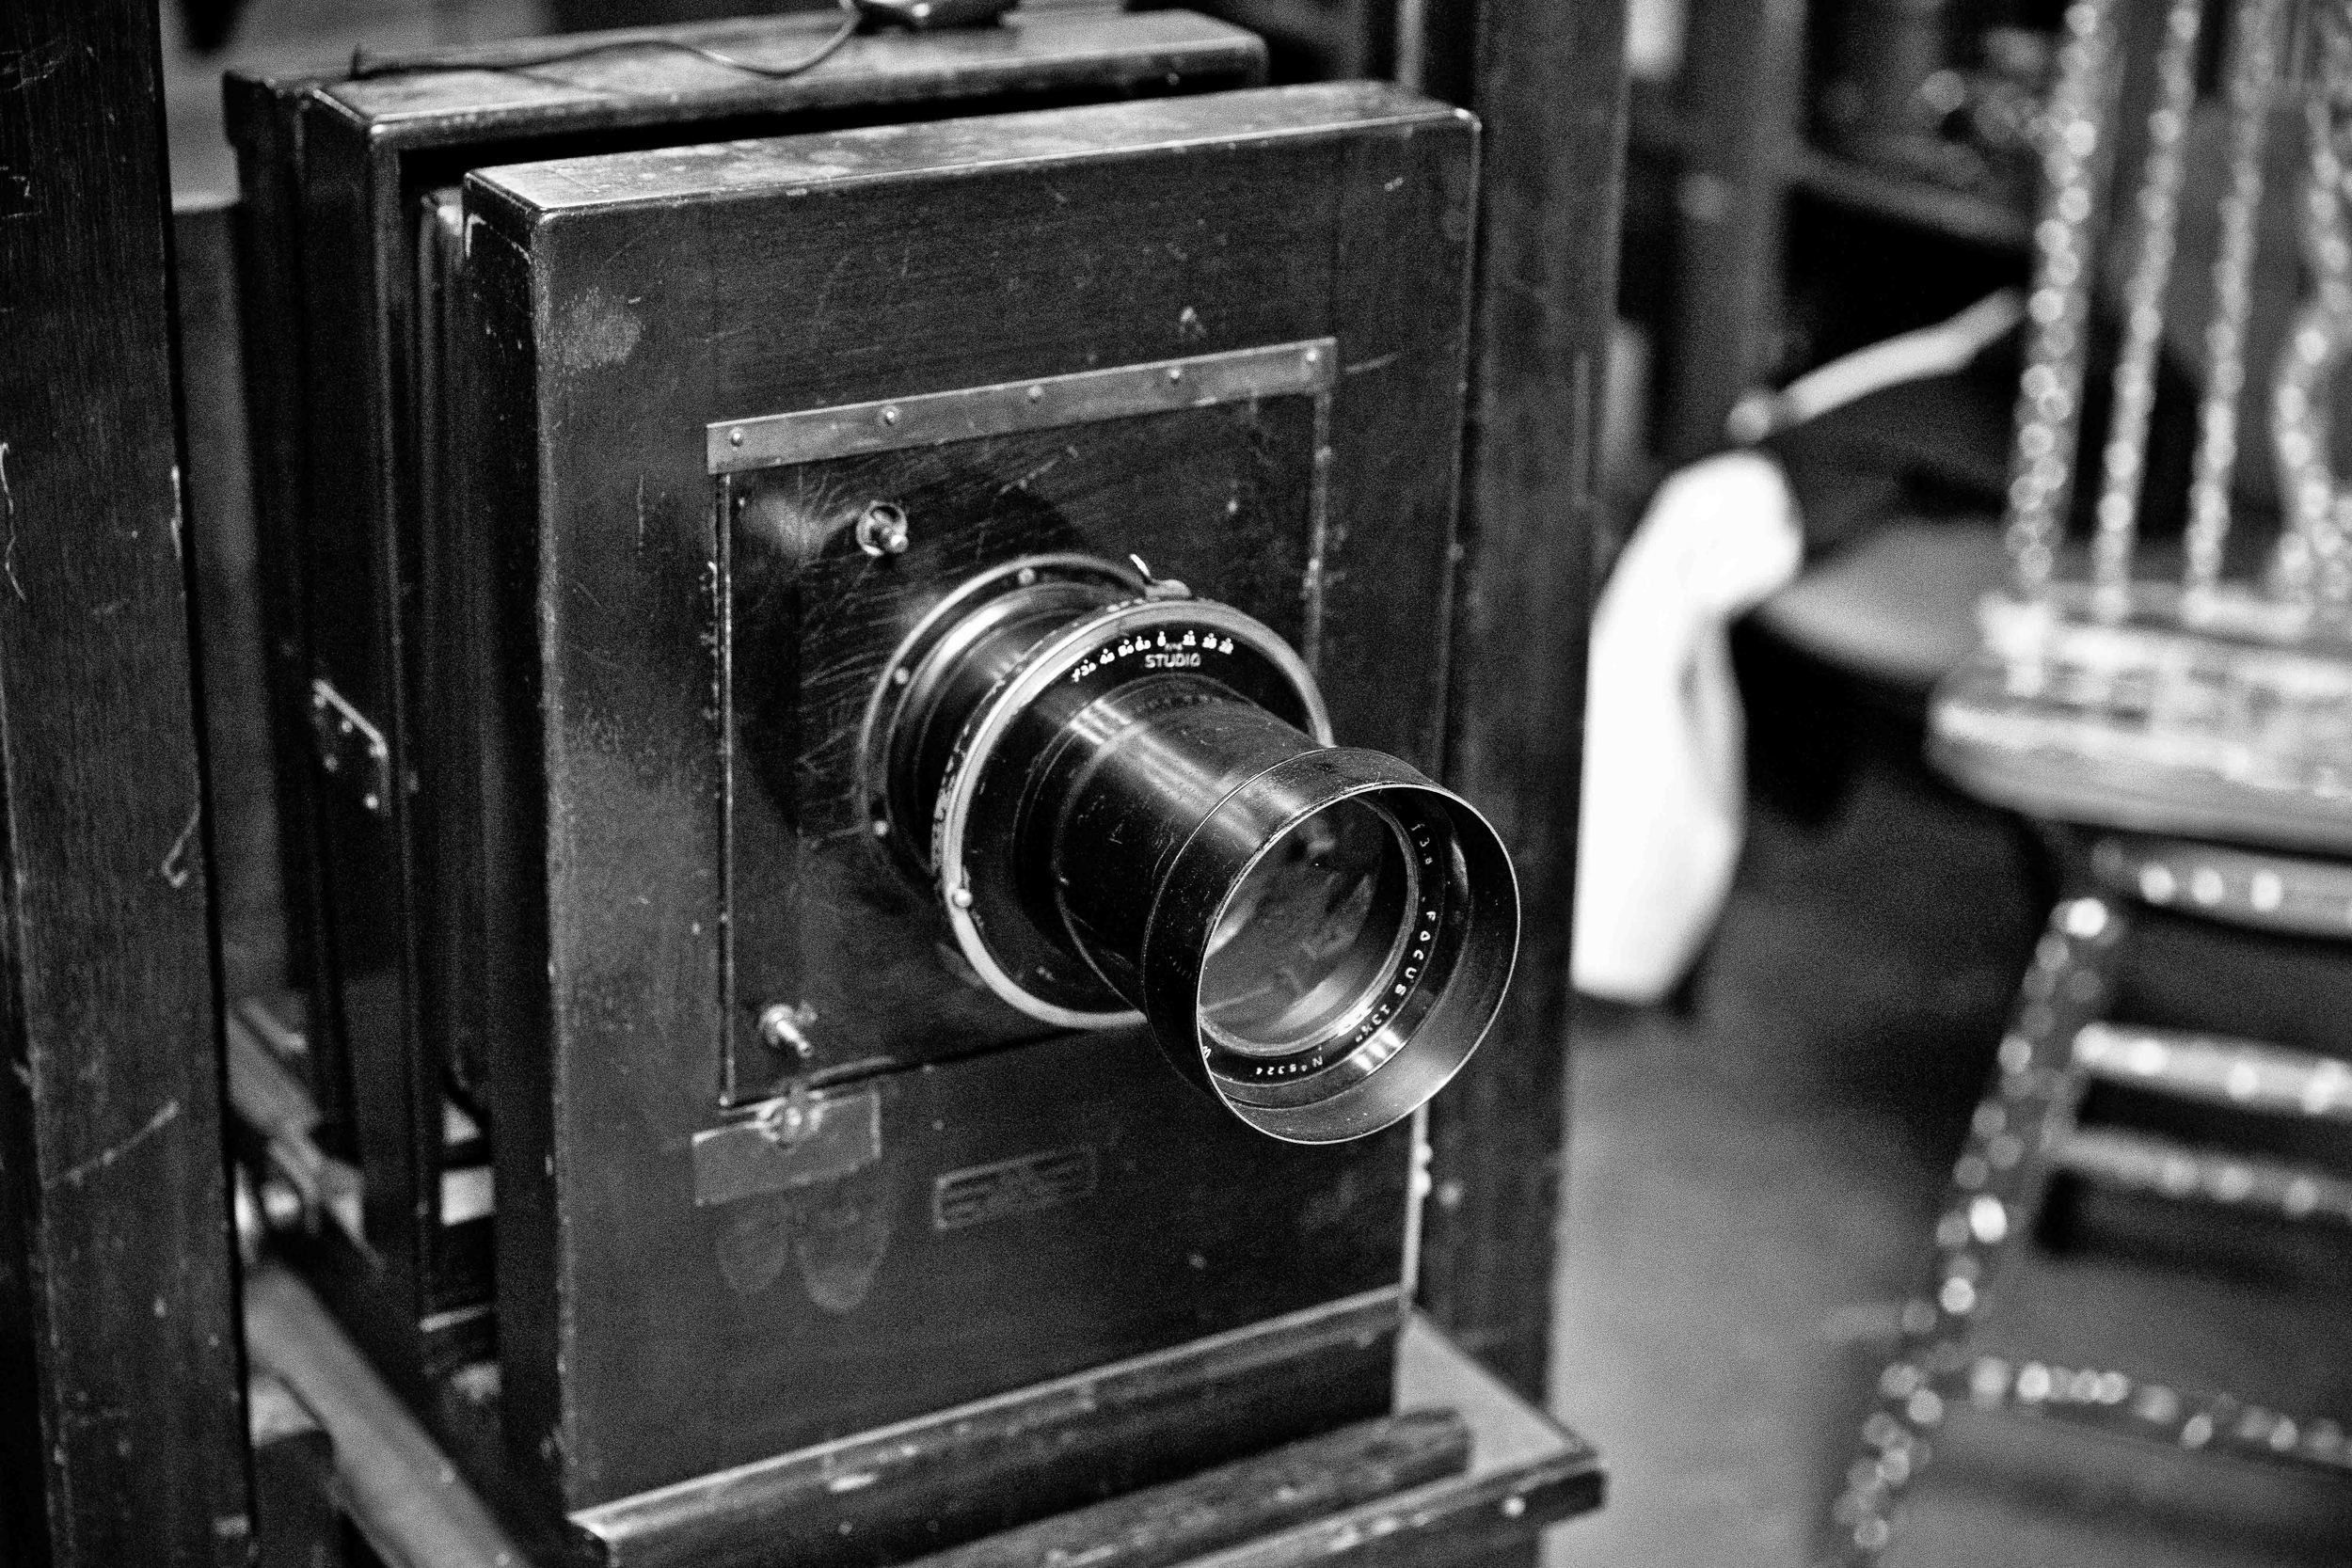 The View Camera used for the portraits circa early 1900s